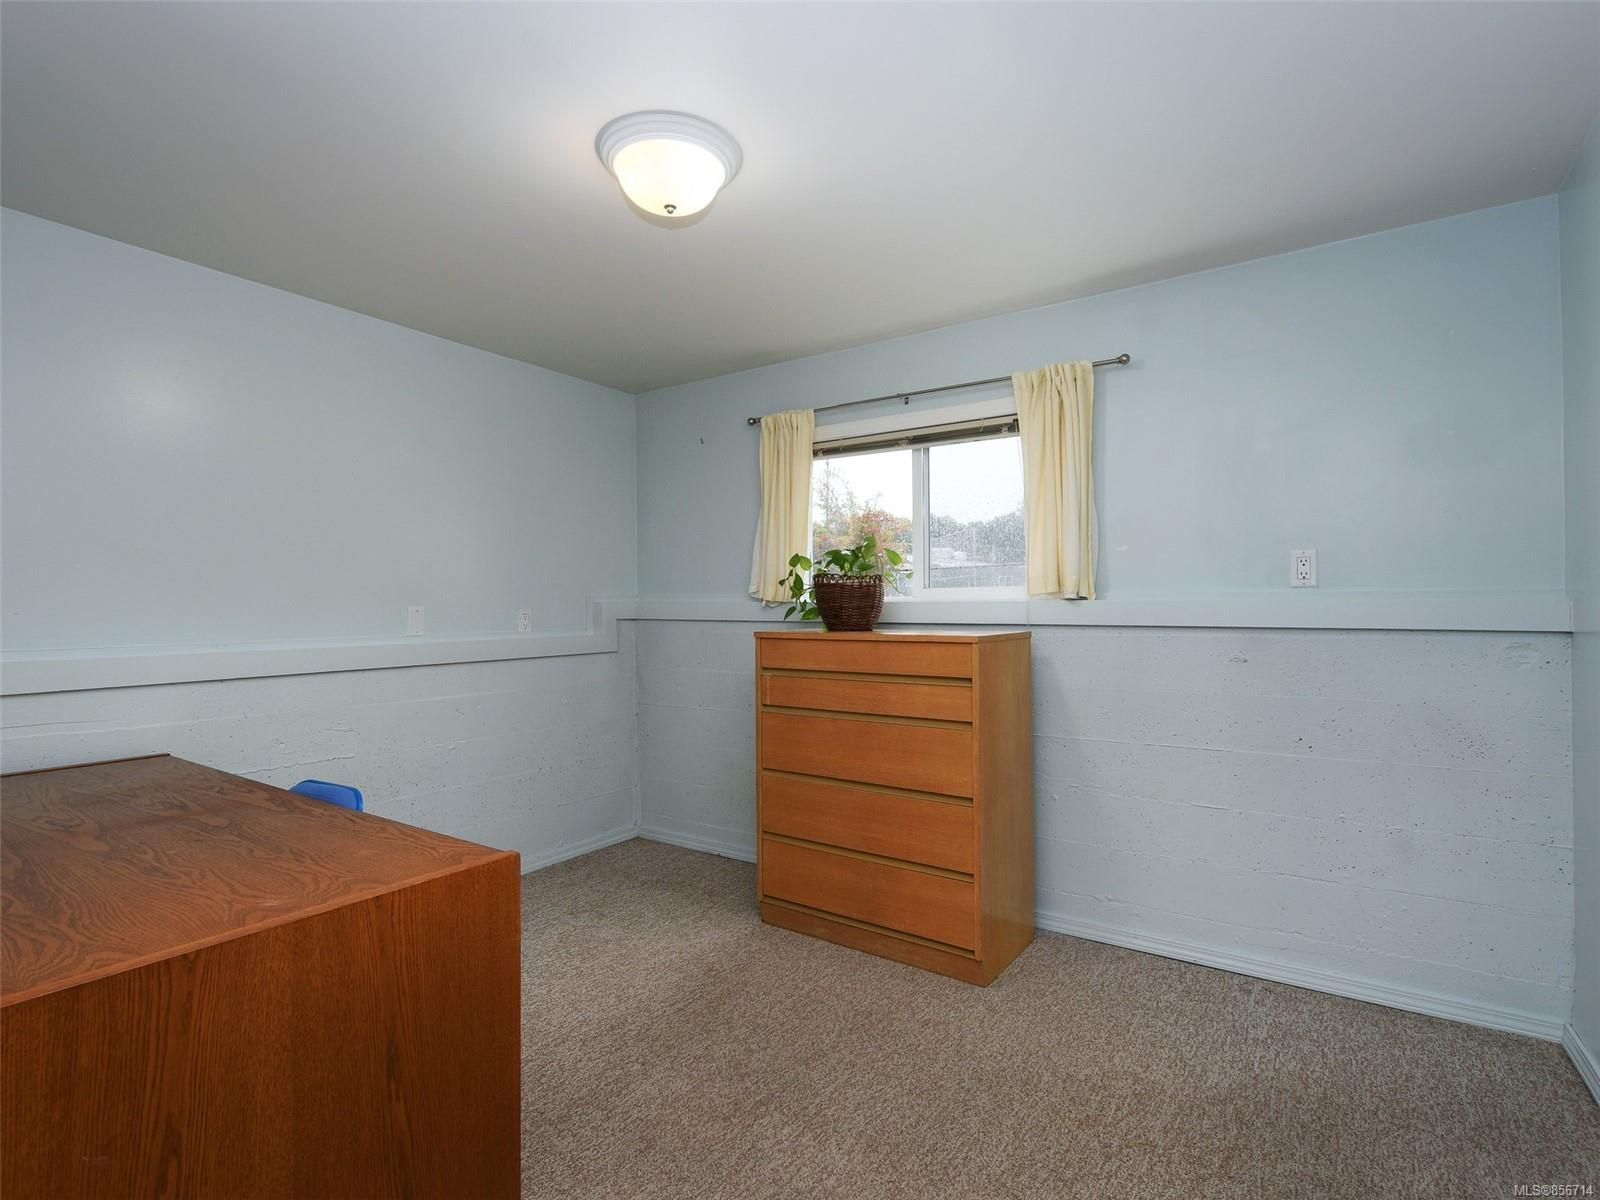 Photo 19: Photos: 3909 Ansell Rd in : SE Mt Tolmie House for sale (Saanich East)  : MLS®# 856714